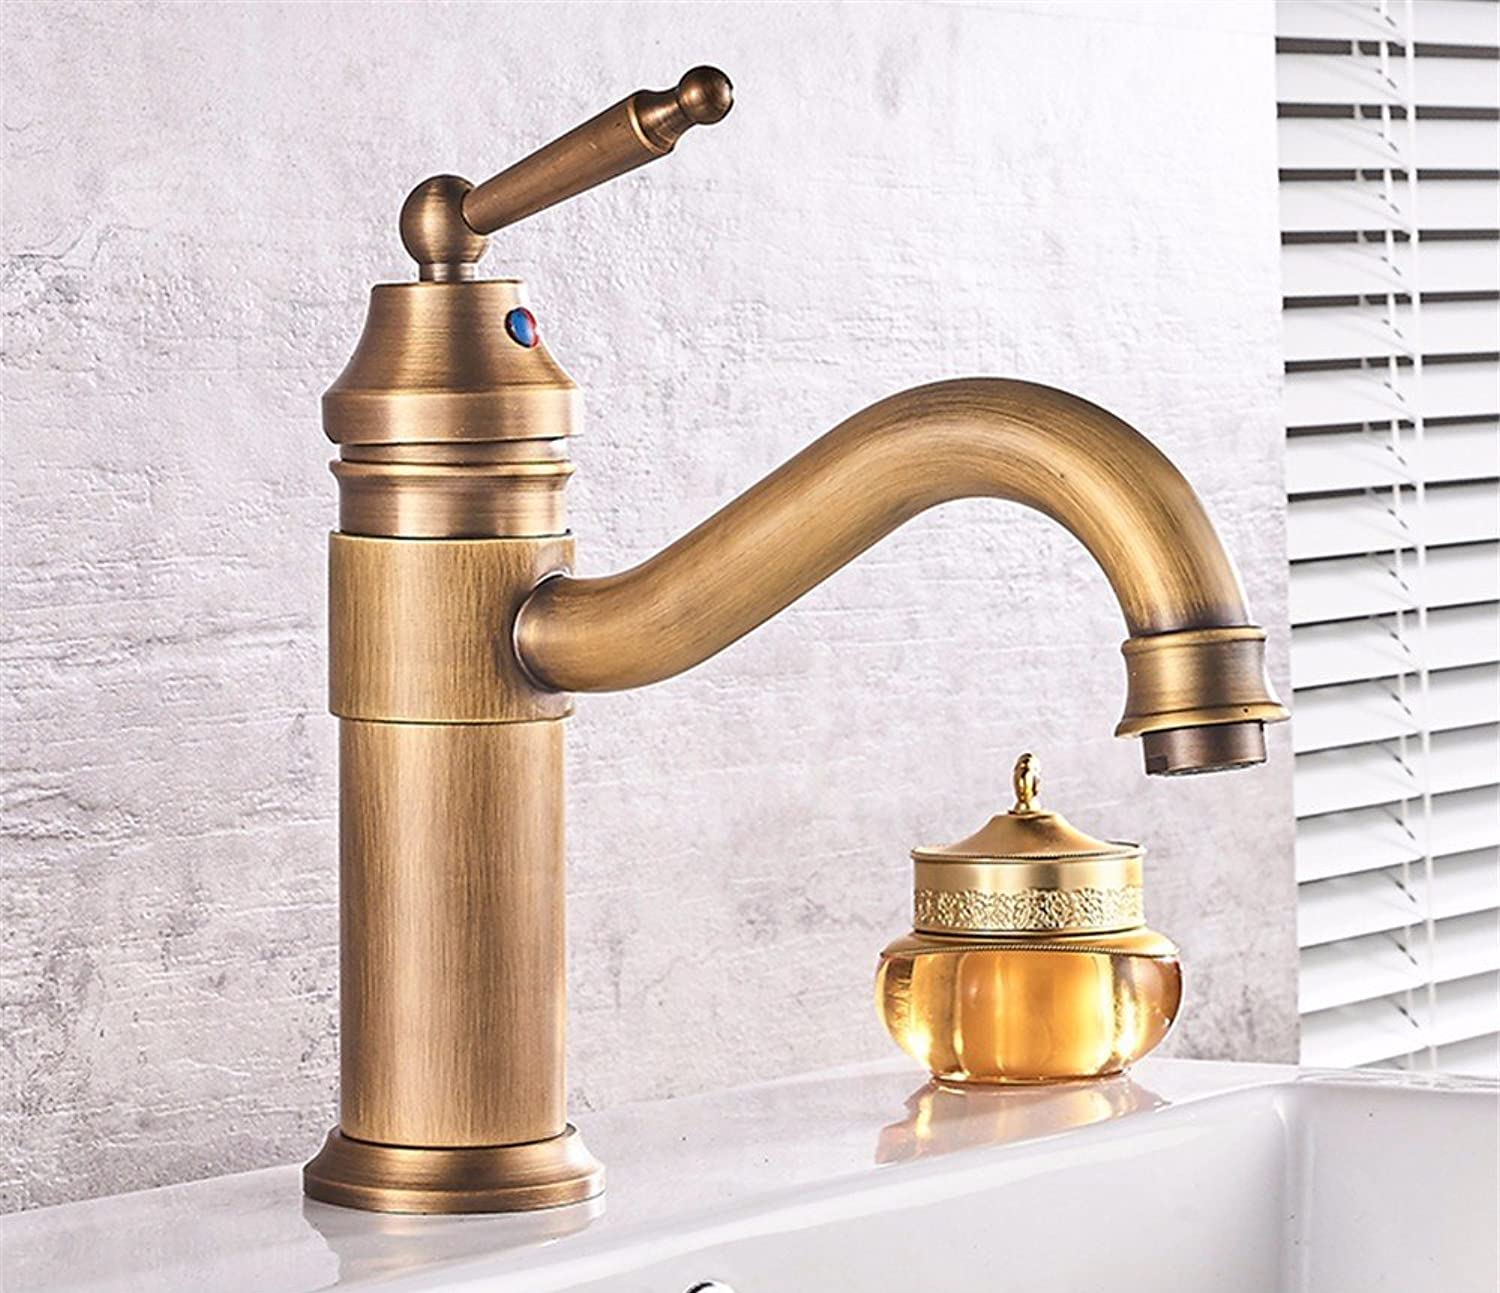 Hlluya Professional Sink Mixer Tap Kitchen Faucet Retro single hole Washbasin antique basin surface basin full copper cold water faucet